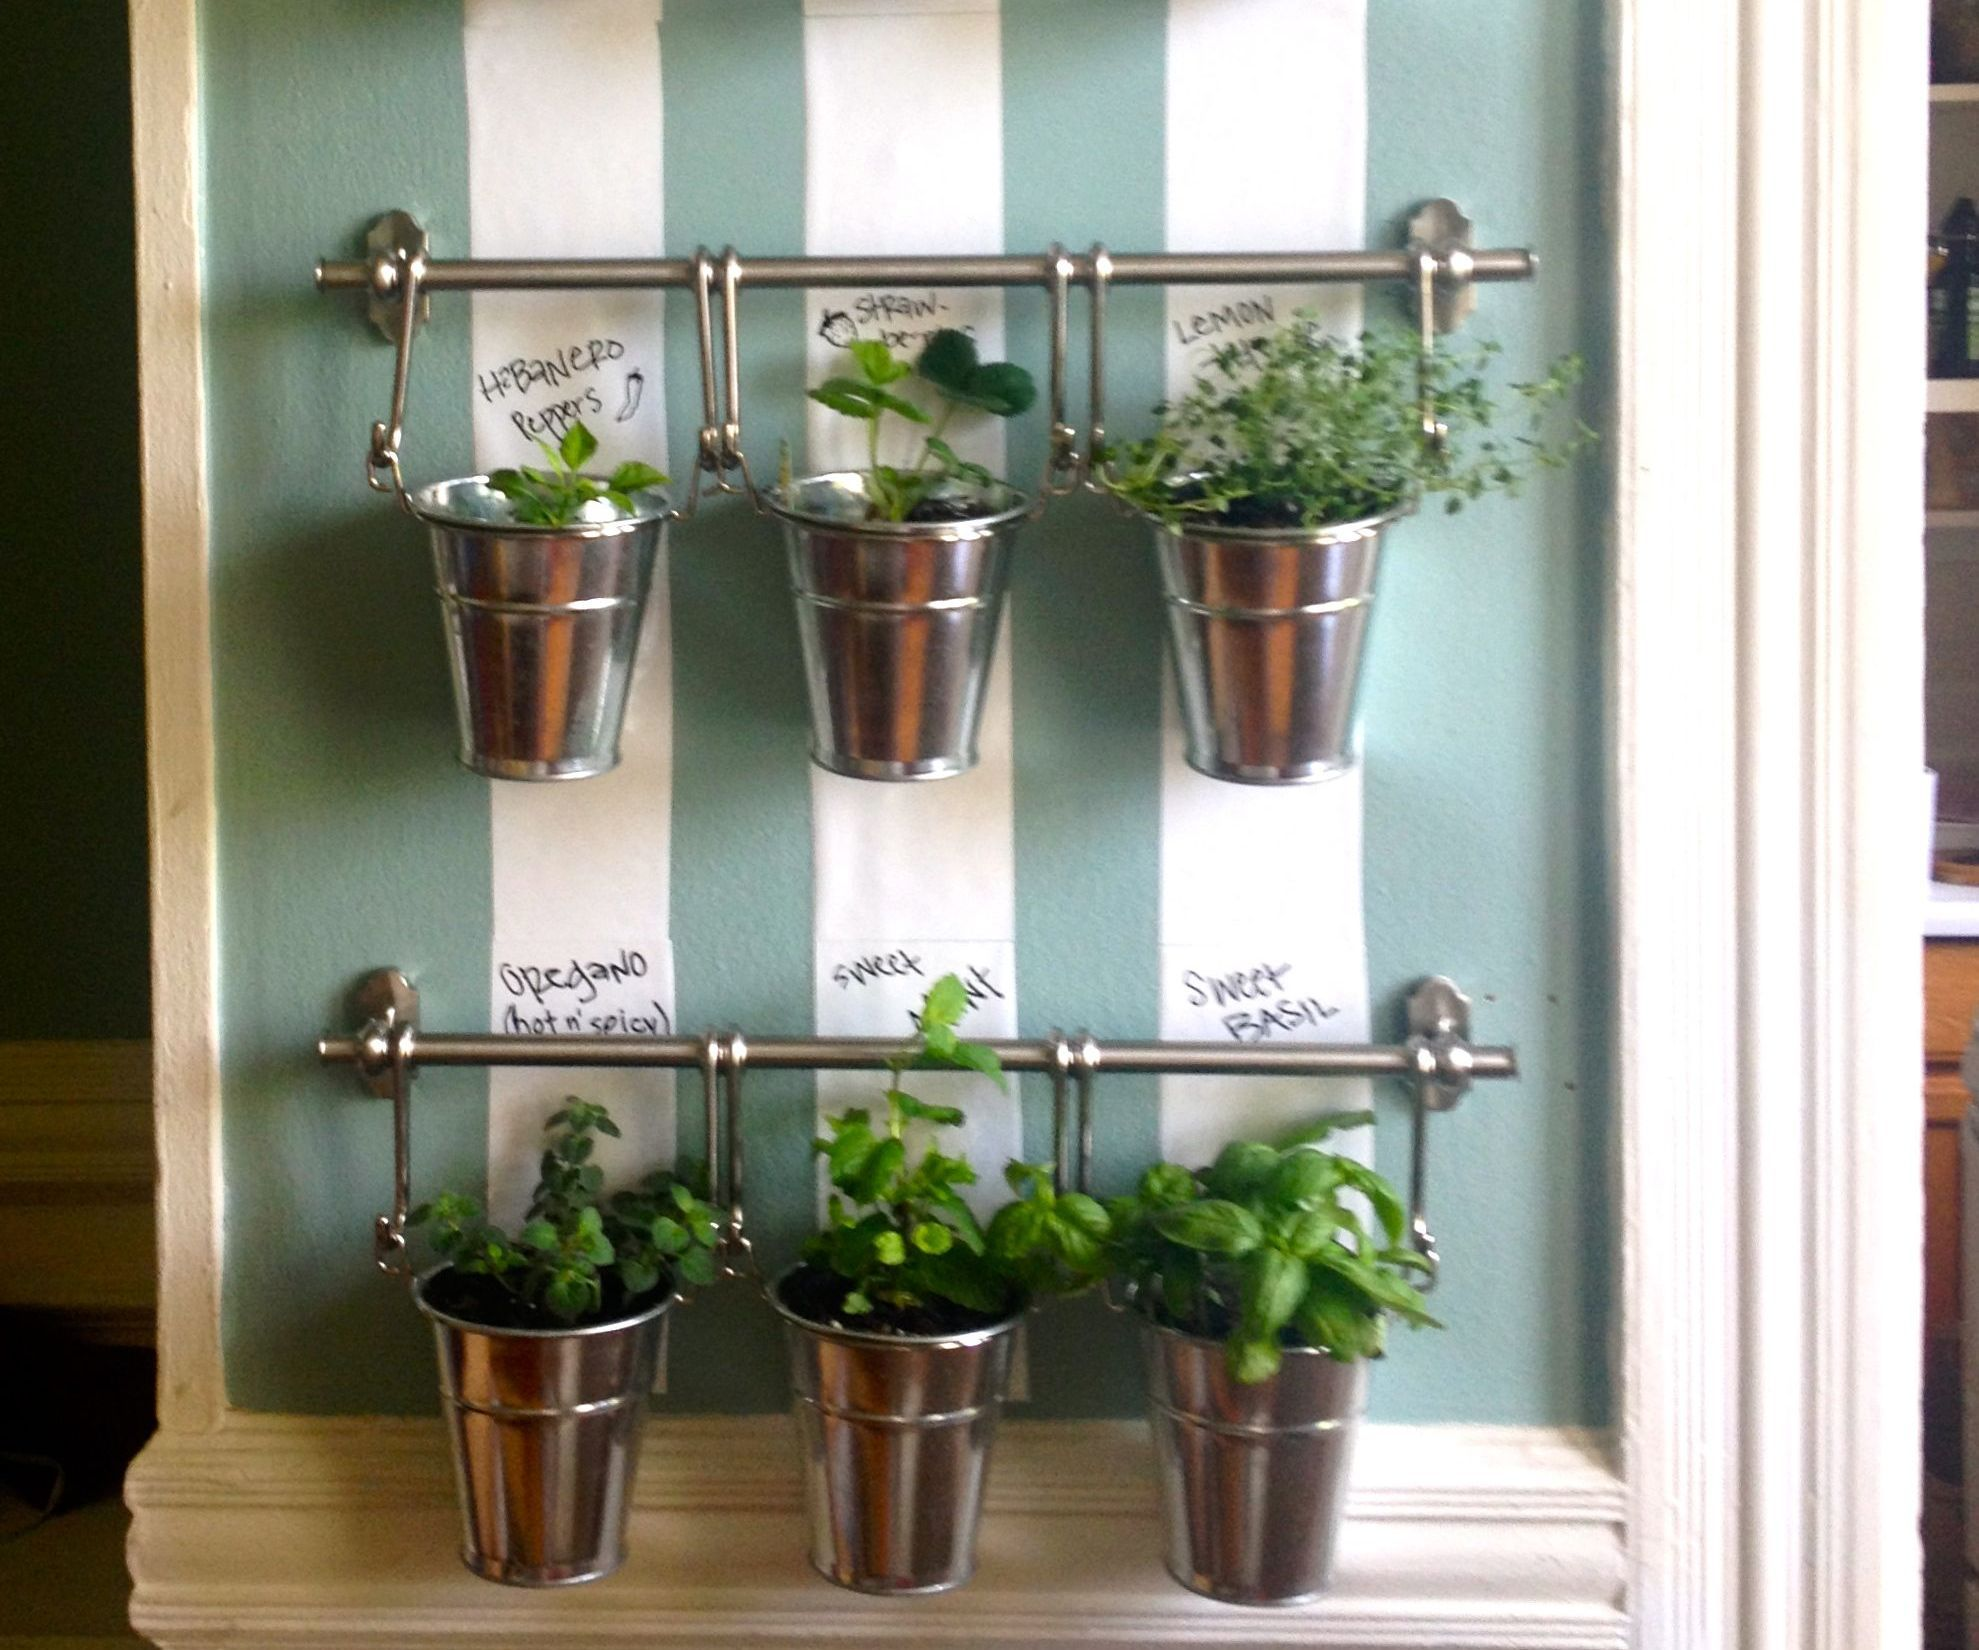 Indoor herb garden plus herbs to grow in winter plus diy hydroponics plus plant containers plus herb growing kit